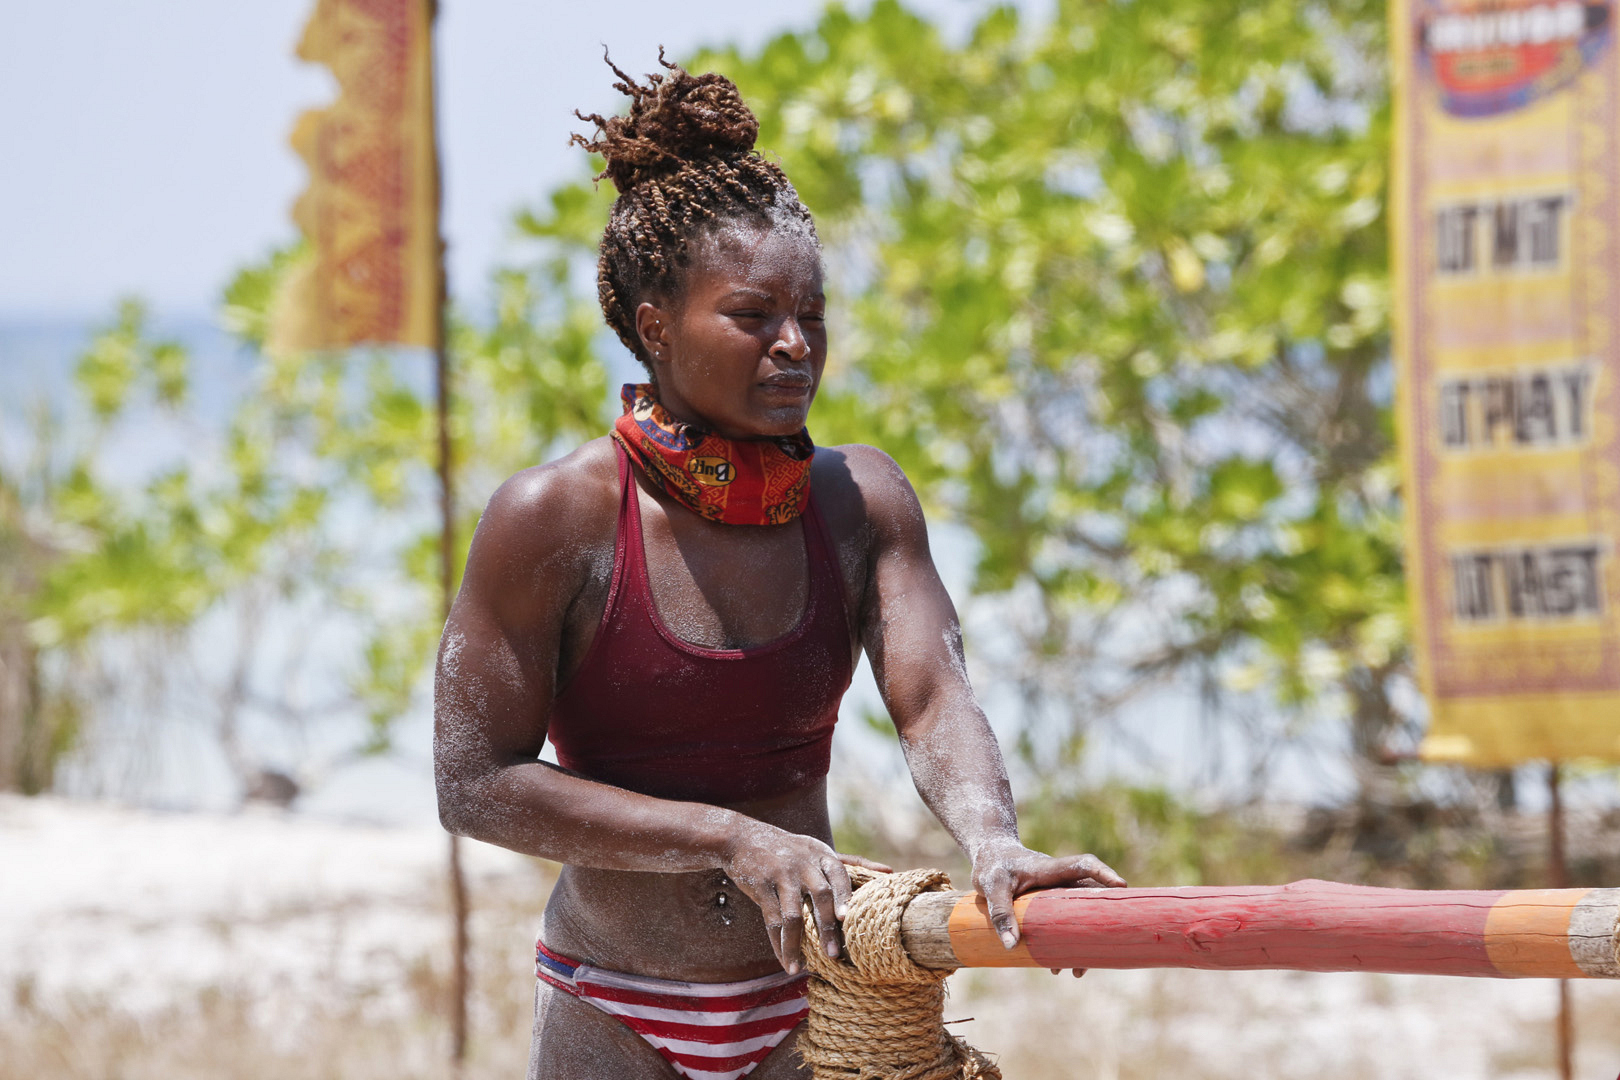 Cydney proves why she's a member of the Brawn Tribe.